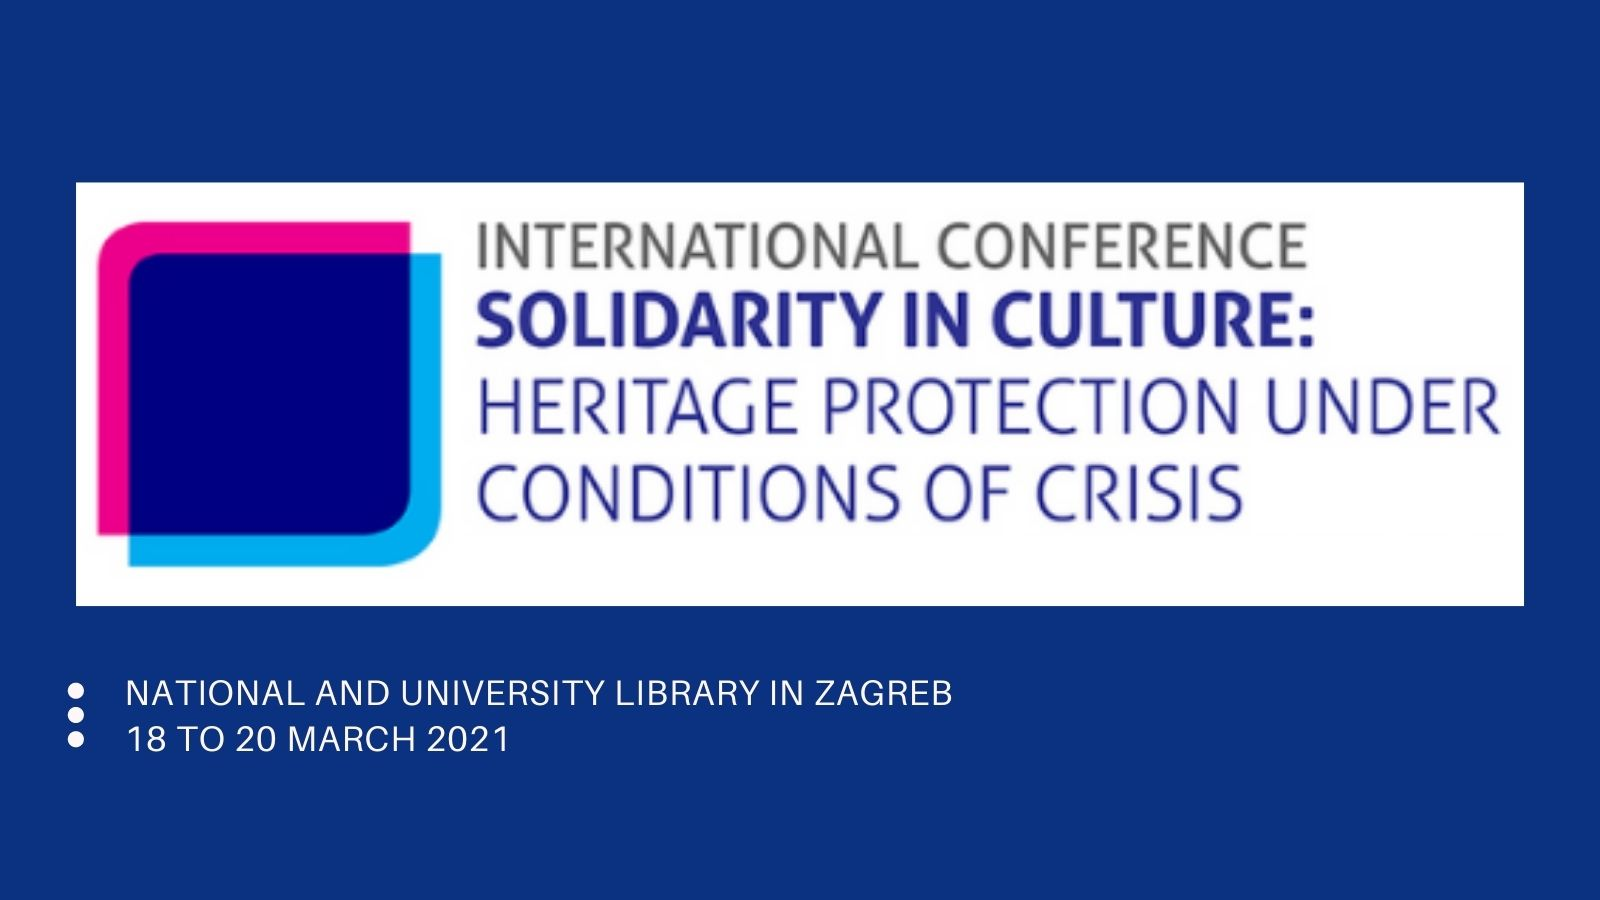 Solidarity in culture: Heritage protection under conditions of crisis